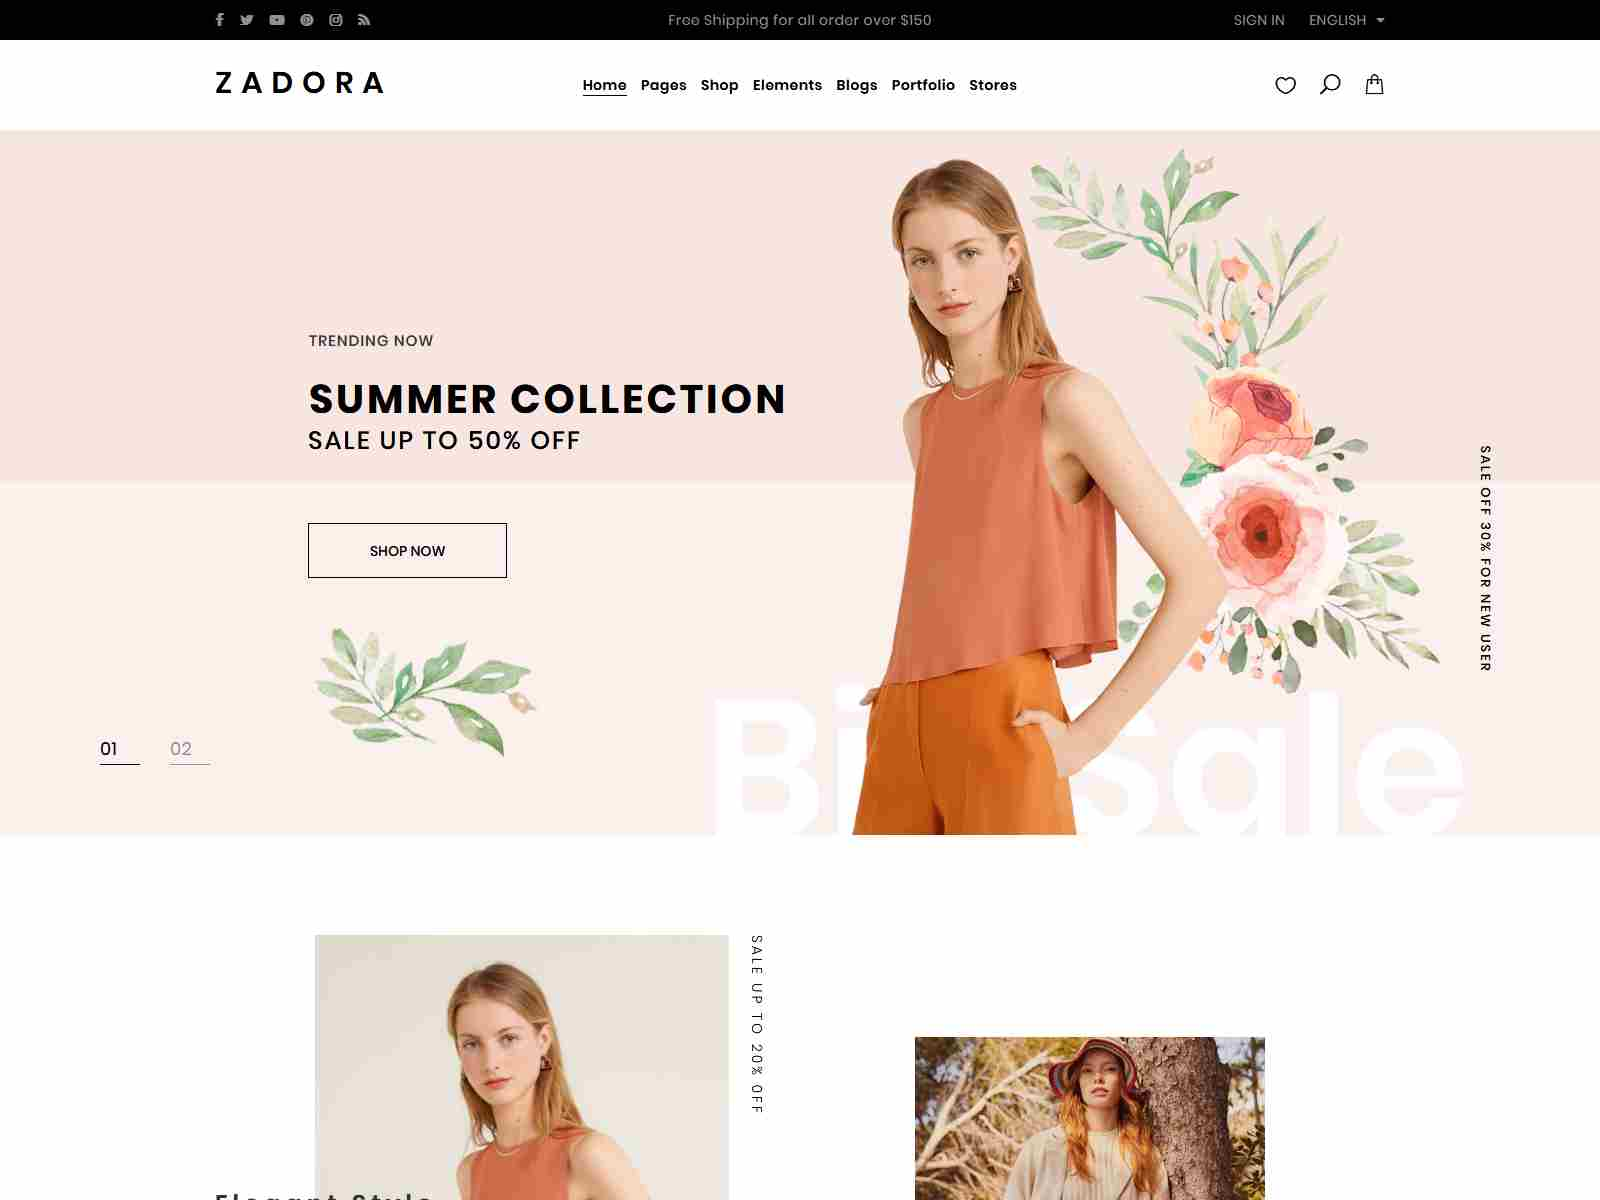 Zadora - Clean, Minimal WooCommerce WordPress Theme fashion wordpress themes